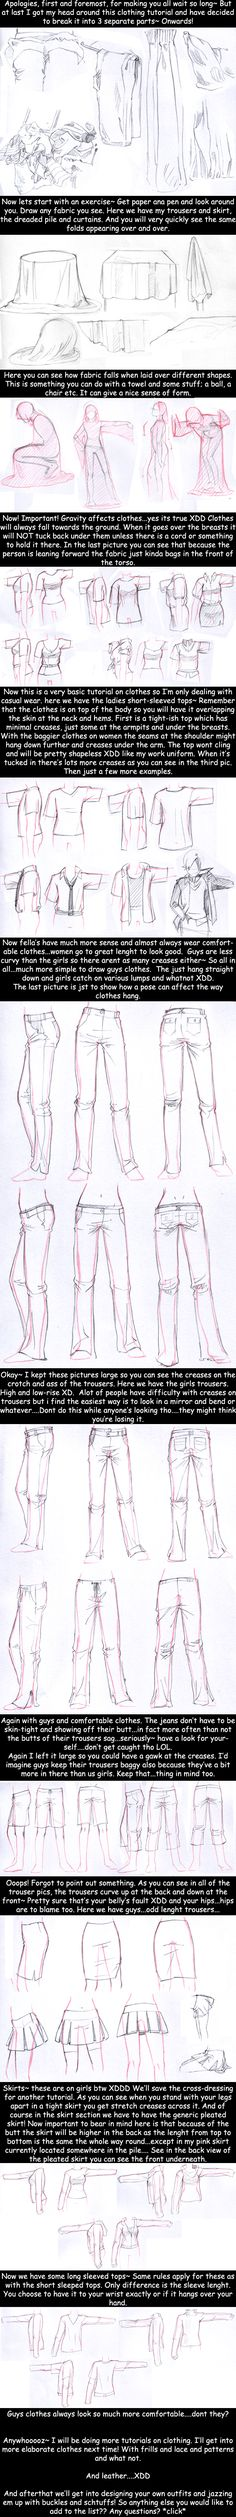 Manga Drawing Design How to Draw - Tutorial: Clothes and Folds for Comic / Manga Panel Design Reference Drawing Lessons, Drawing Techniques, Drawing Tips, Art Lessons, Drawing Ideas, Anatomy Reference, Drawing Reference, Tutorial Draw, Photo Manga